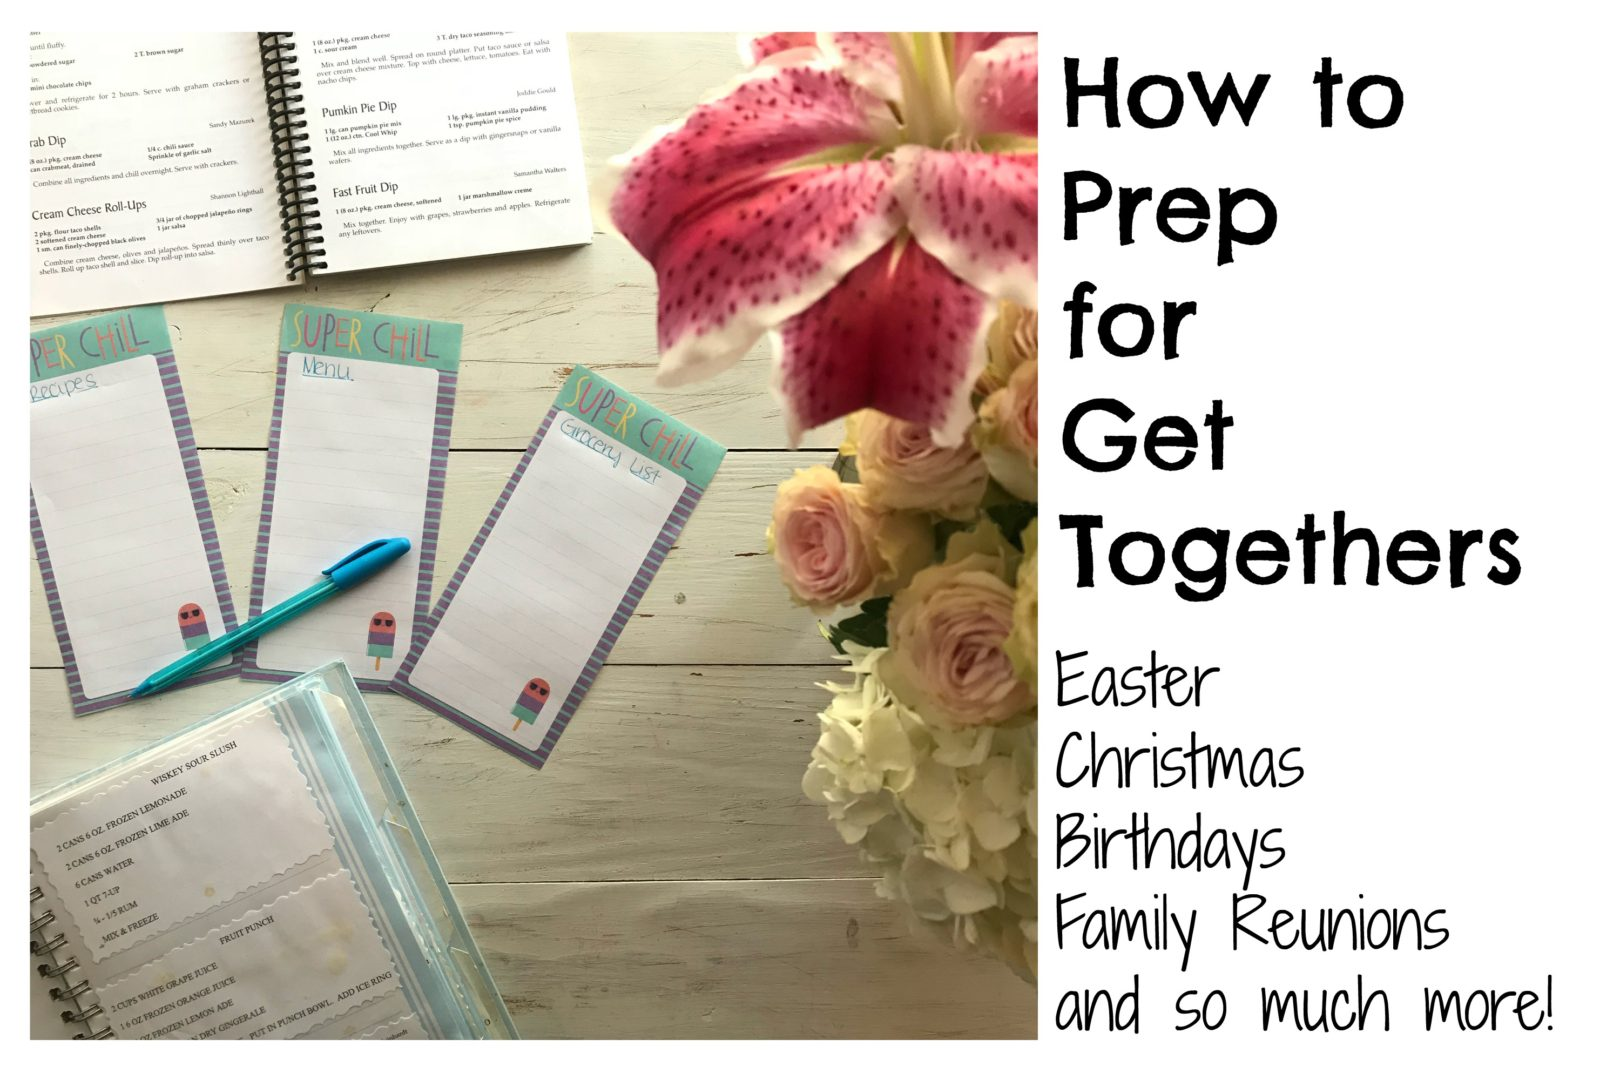 How to Prep for Get Togethers | AlwaysMovingMommy.com | Don't let your holiday get together stress you out. These tips will help you plan it all.